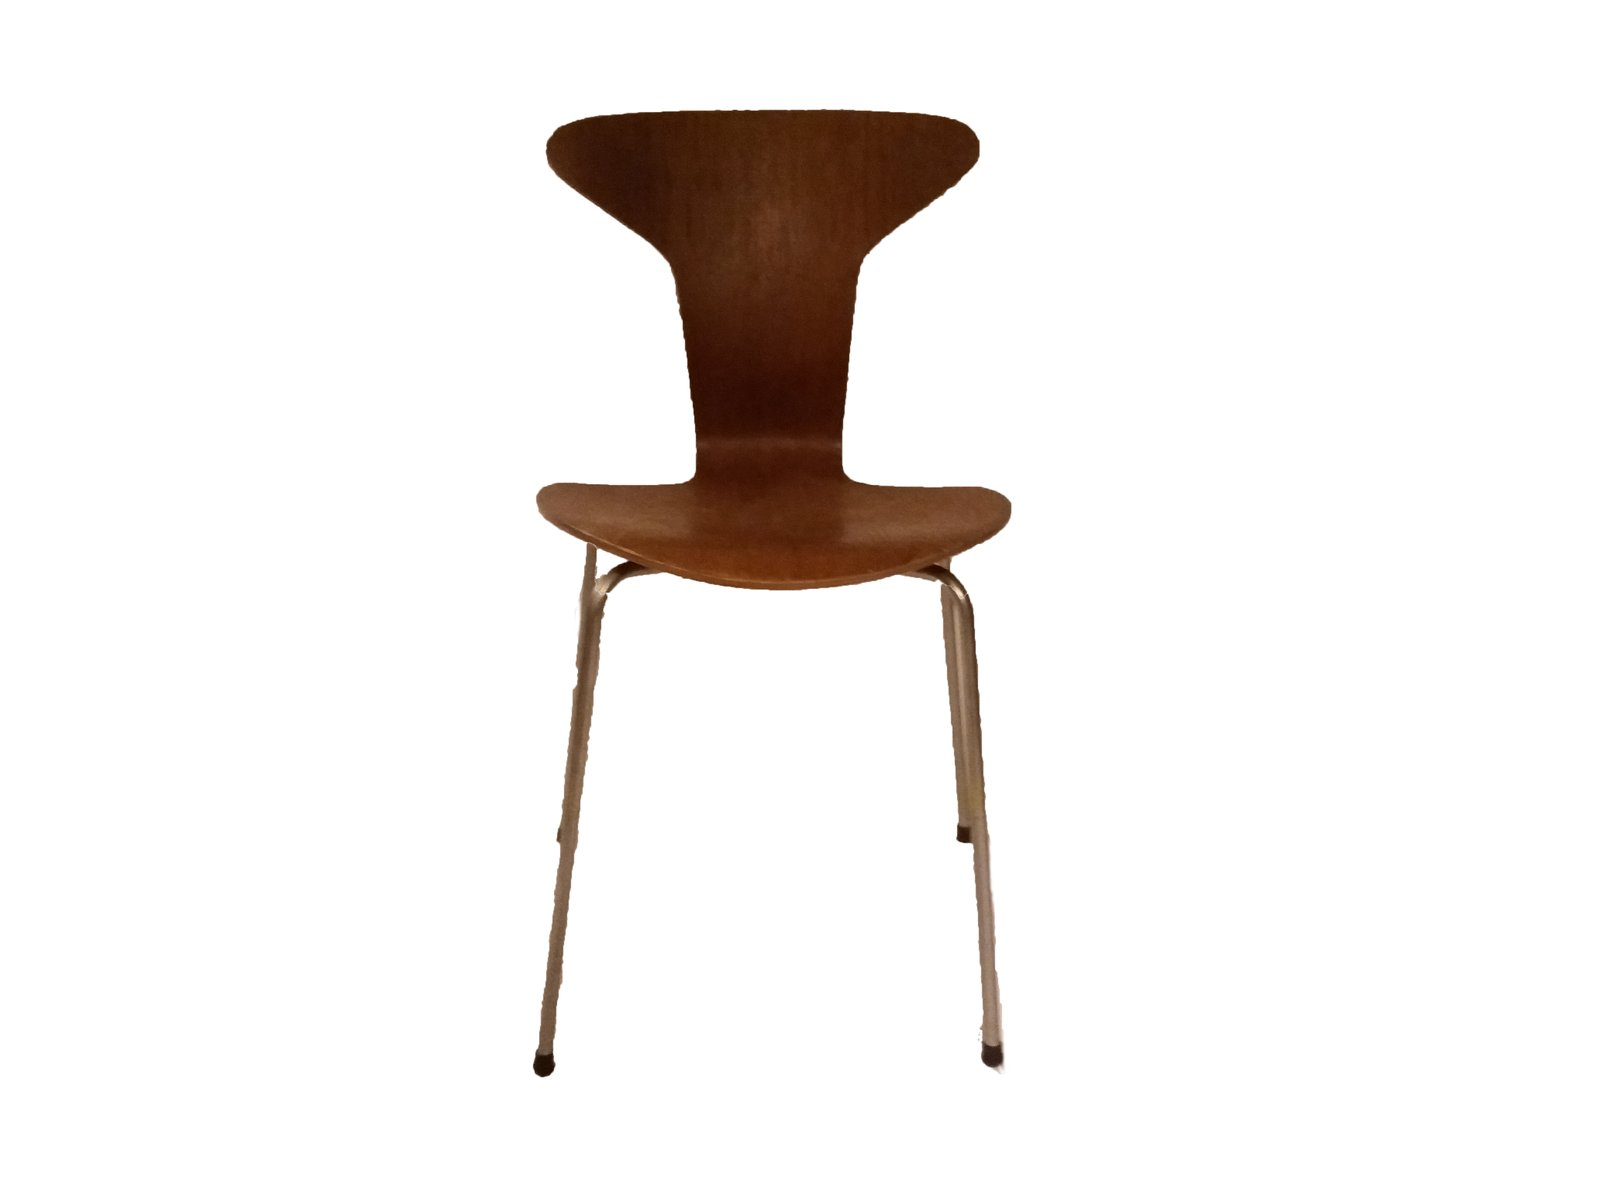 Mosquito chair by arne jacobsen 1955 for sale at pamono for Arne jacobsen nachbau